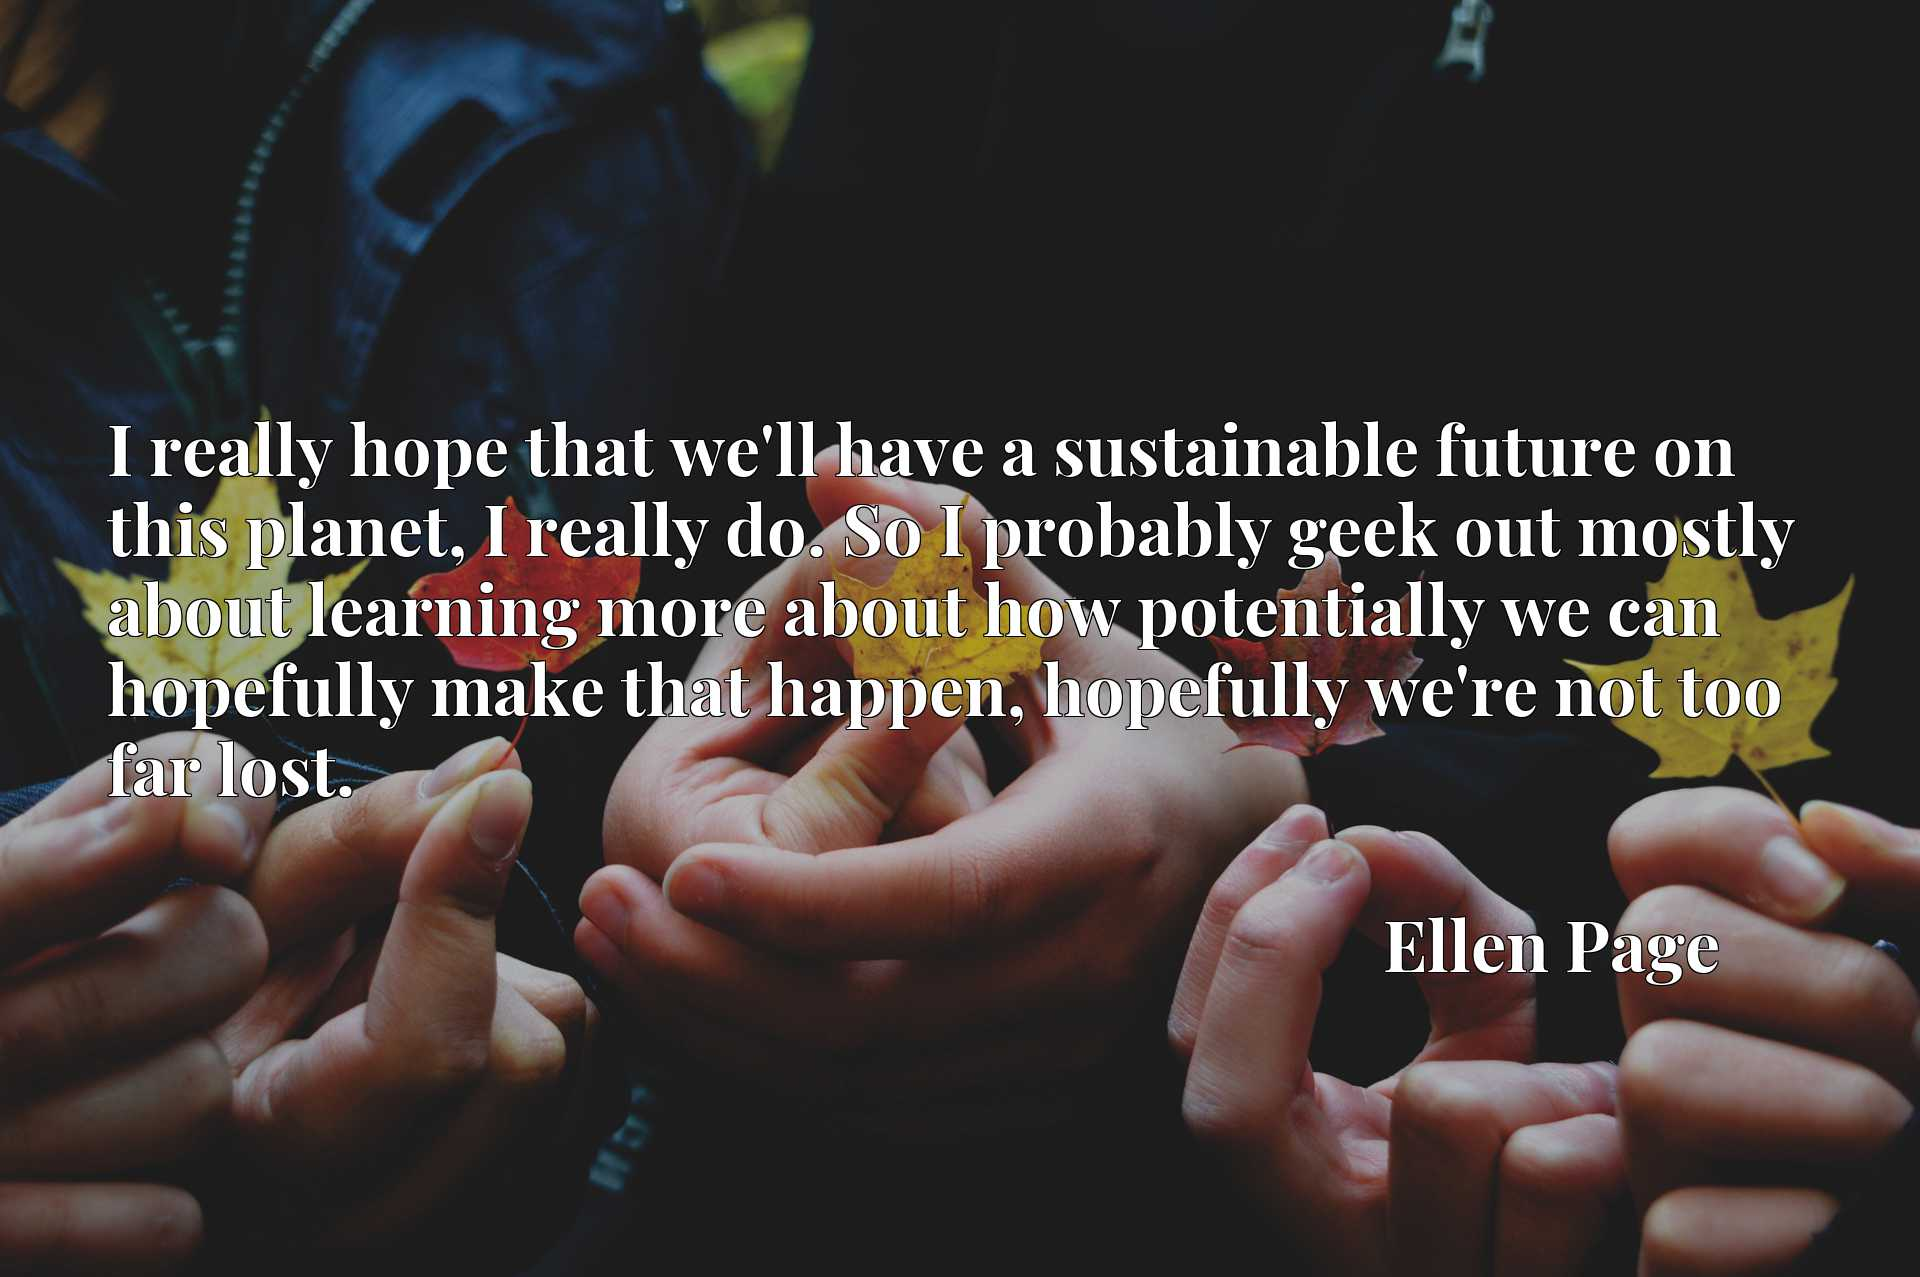 I really hope that we'll have a sustainable future on this planet, I really do. So I probably geek out mostly about learning more about how potentially we can hopefully make that happen, hopefully we're not too far lost.